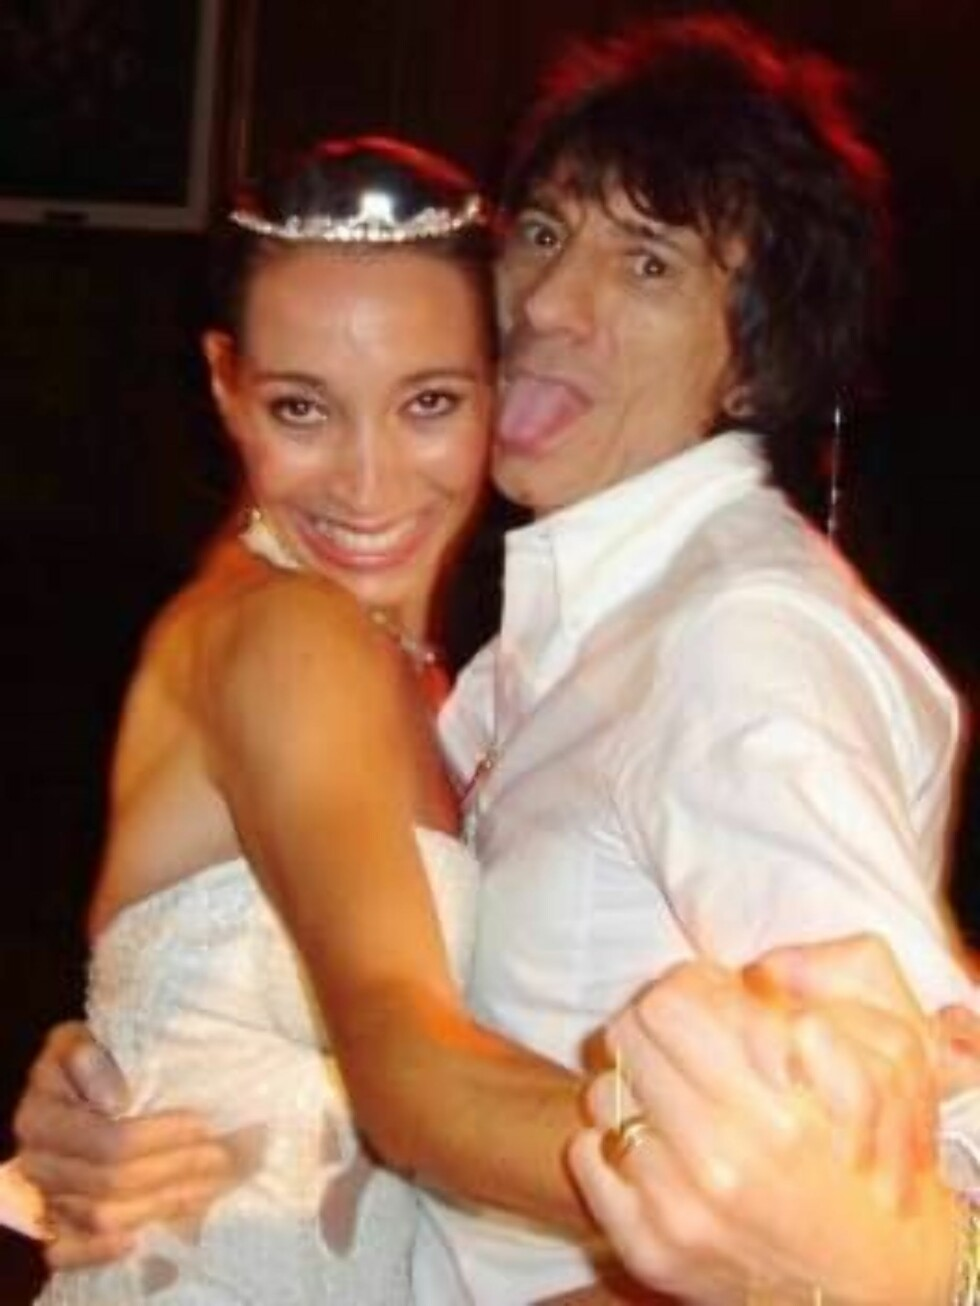 Rolling Stones in Buenos Aires. Mick Jagger and Ron Wood attended a Tango-show in Buenos Aires and had a chat with dancer Mora Godoy backstage - 20060303  colourpress.com EXCLUSIVE  Buenos Aires, Argentina - Rolling Stones in Buenos Aires. Mick Jagger Foto: colourpress.com